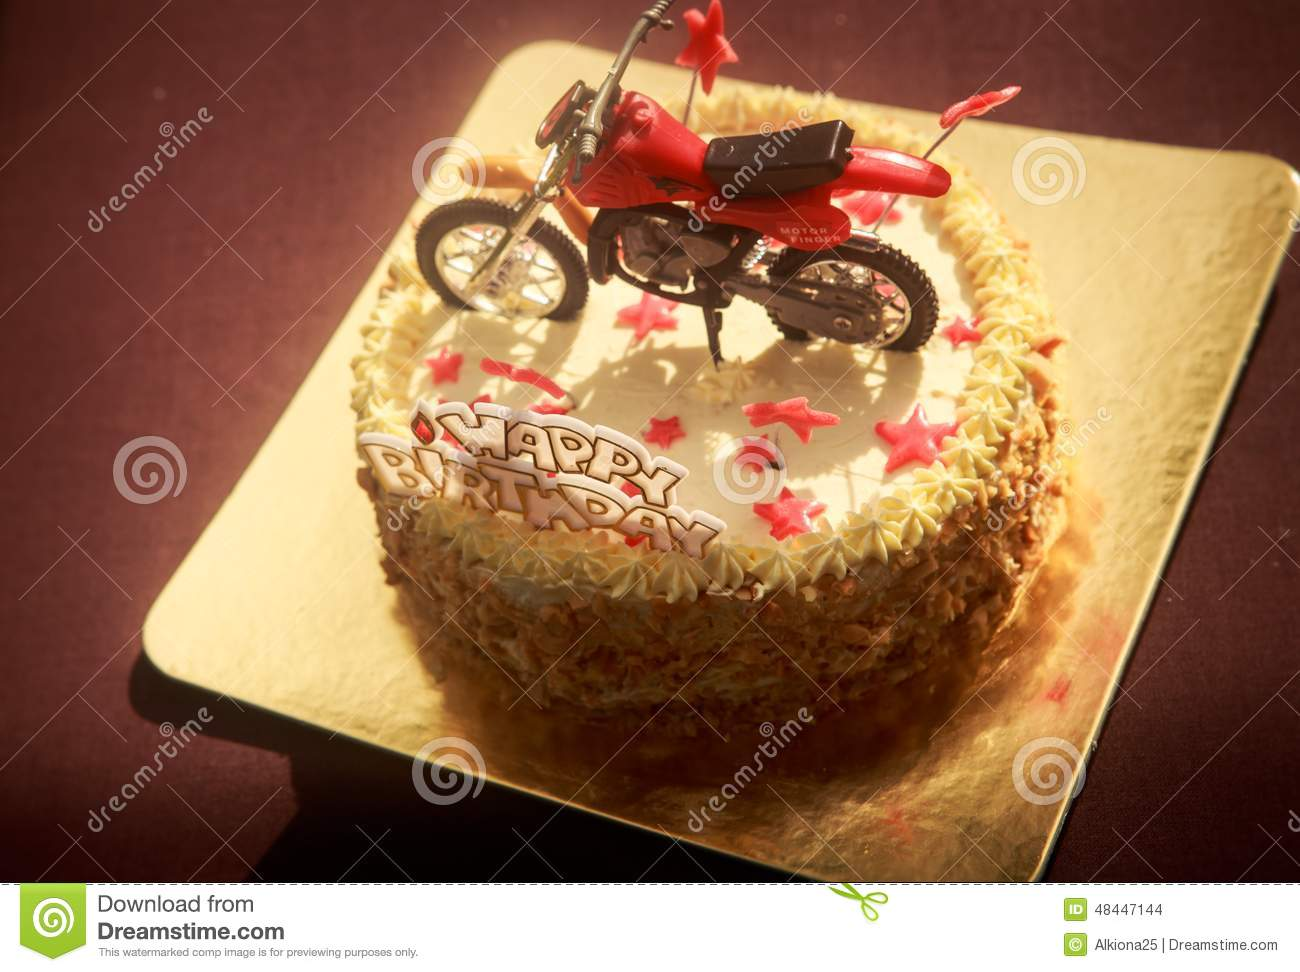 Birthday Cake Decorated With Motorcycle And Red Stars Stock Photo